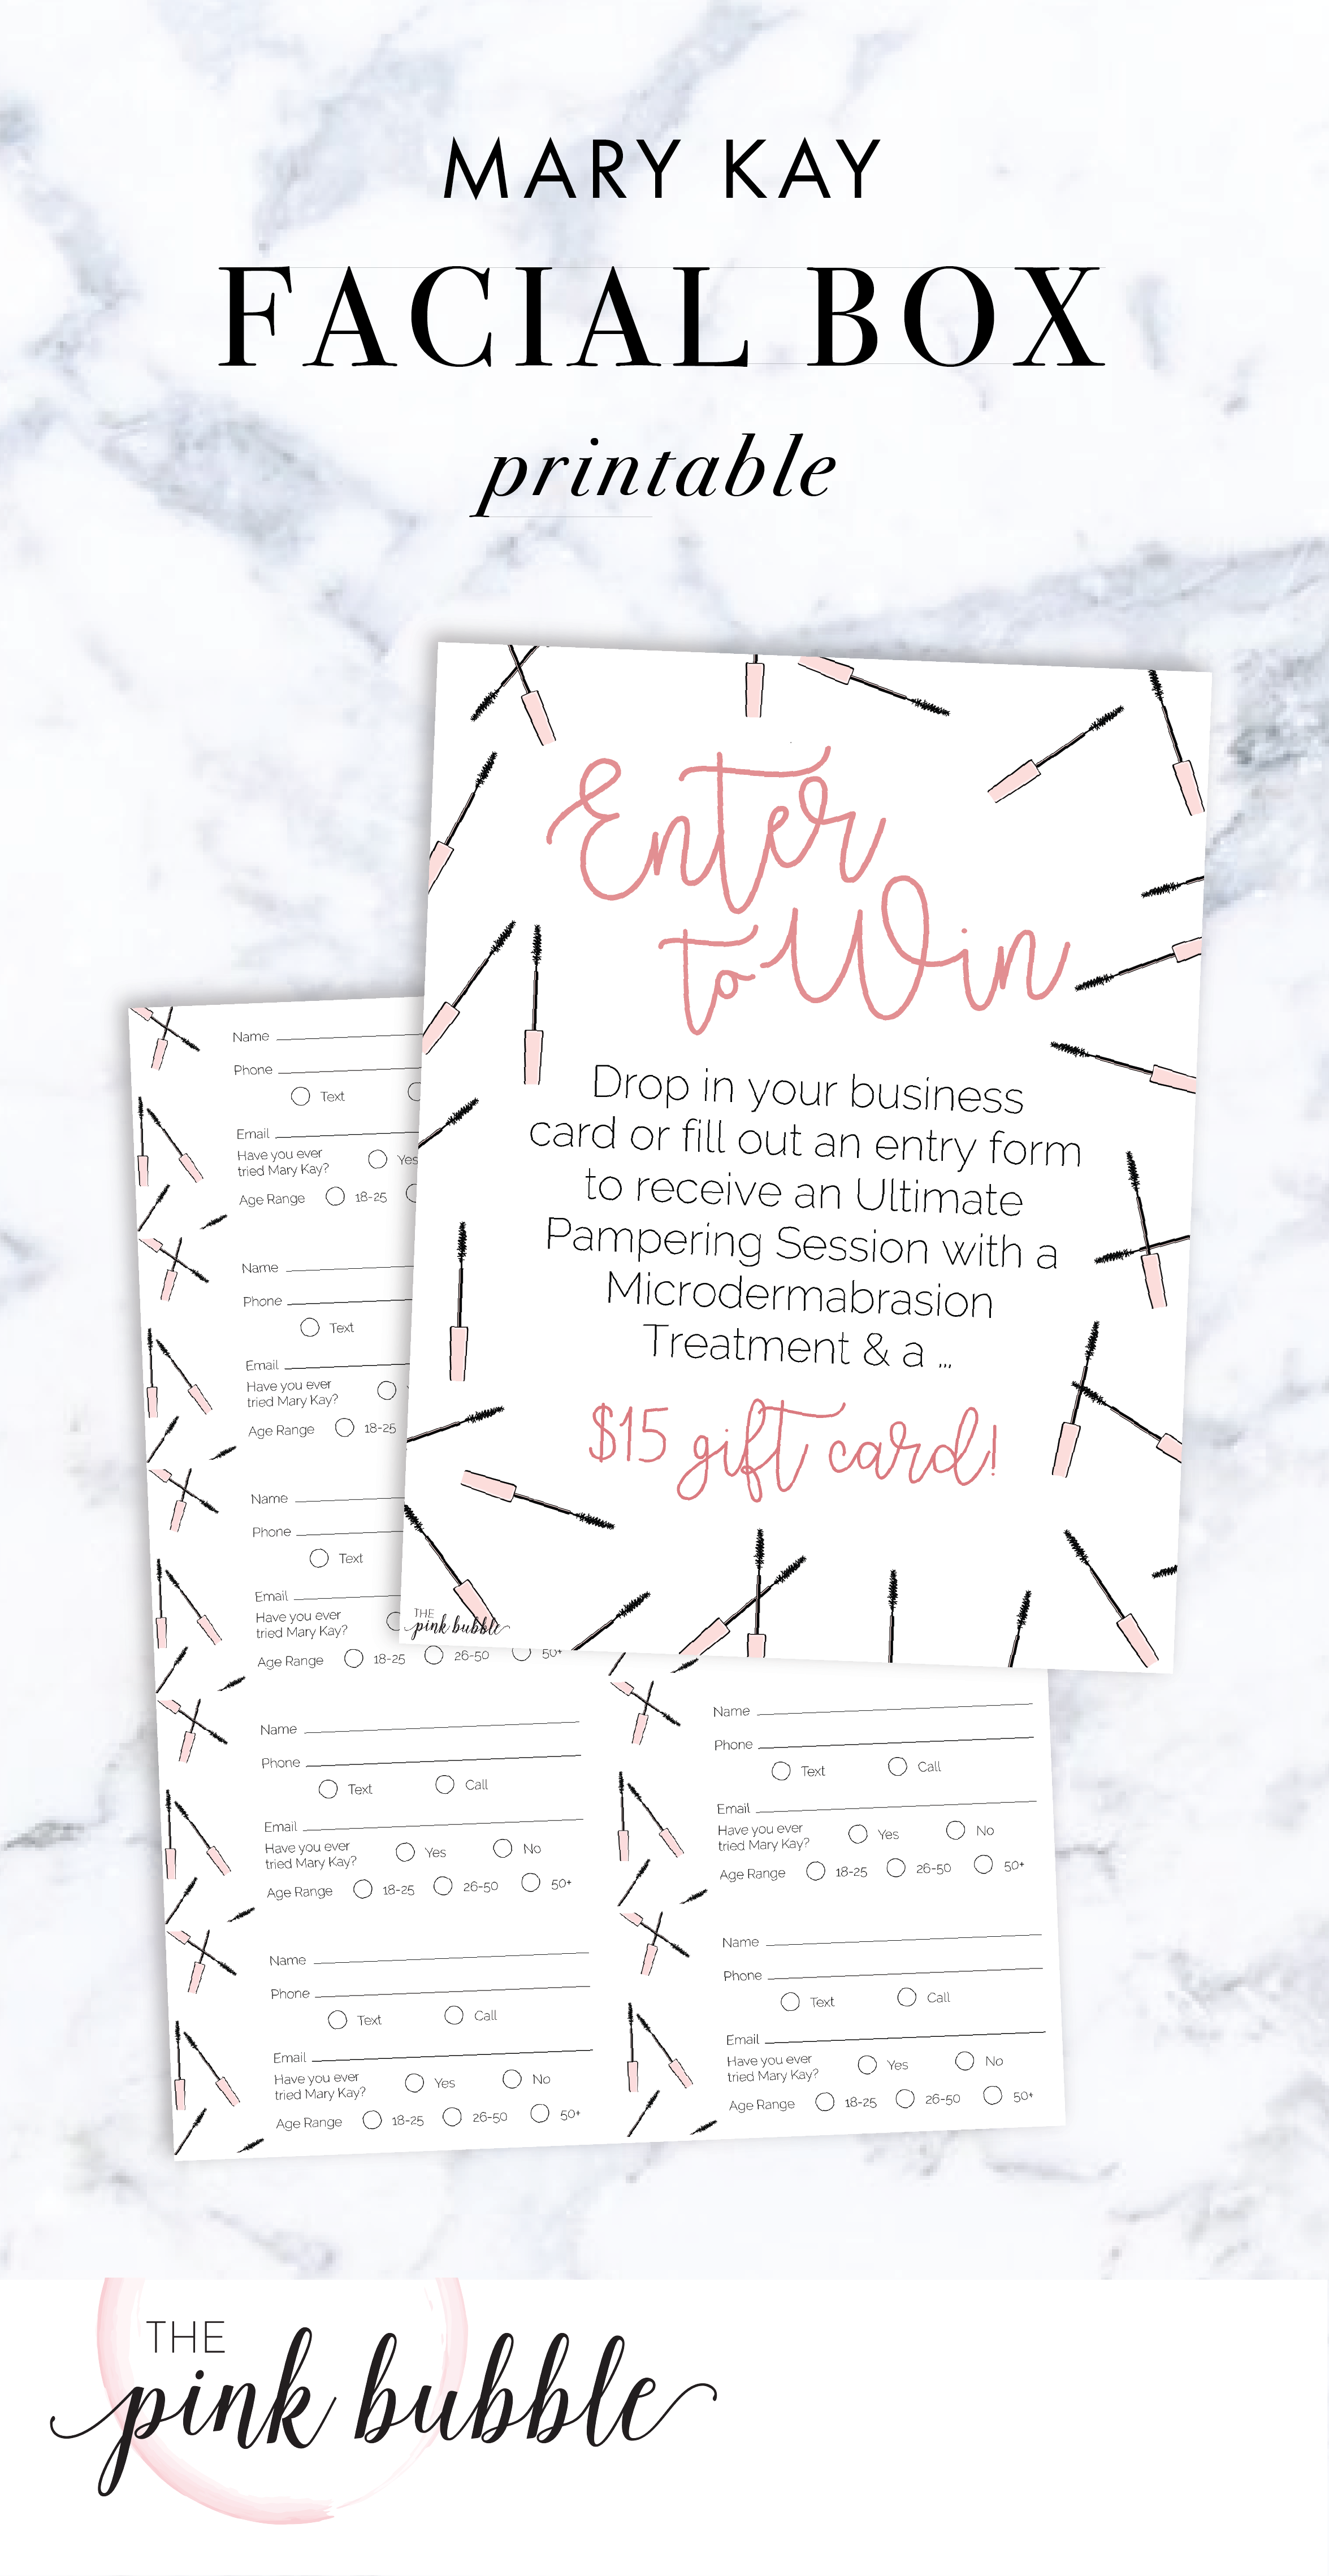 Mary Kay customizable Facial Box inserts with matching info cards ...